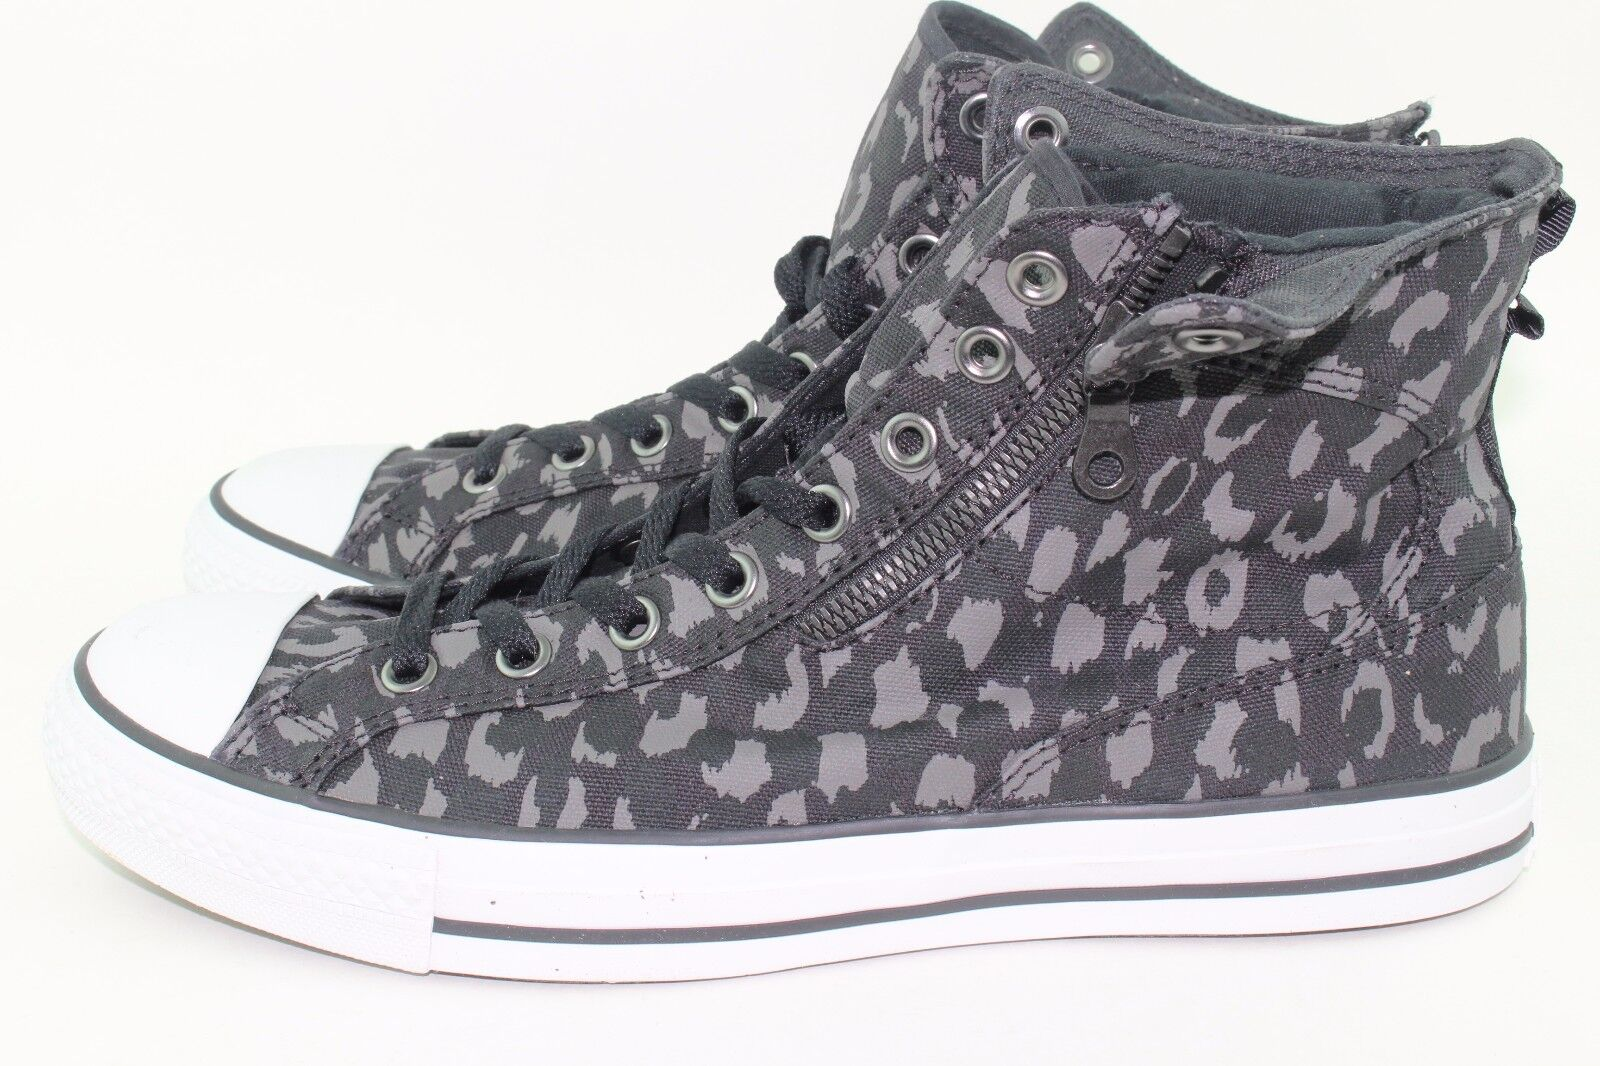 CONVERSE 141813F CT UPTOWN MID UNISEX MEN SZ 12.0 NEW WOMEN SZ 14.0 RARE NEW 12.0 PHANTOM c2a9df